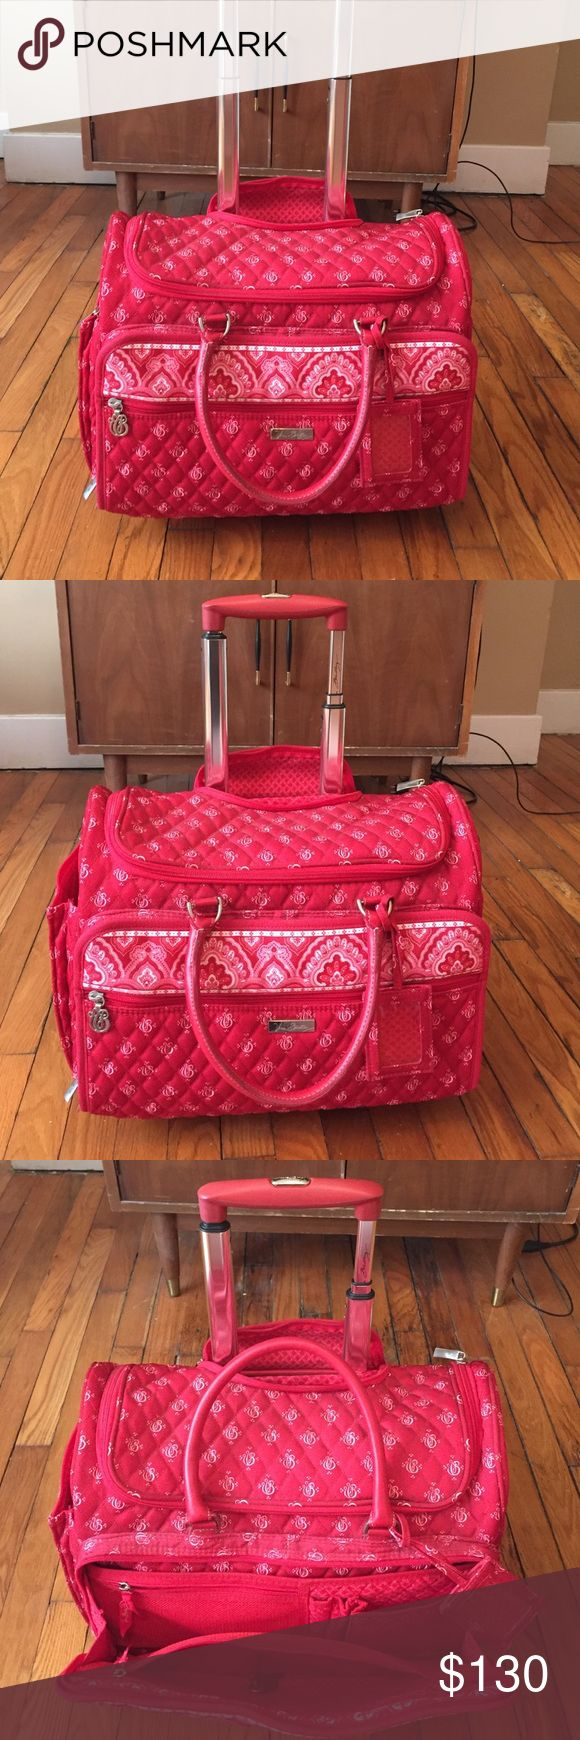 31 best Purses and luggage images on Pinterest | Laptops, Rolling ...